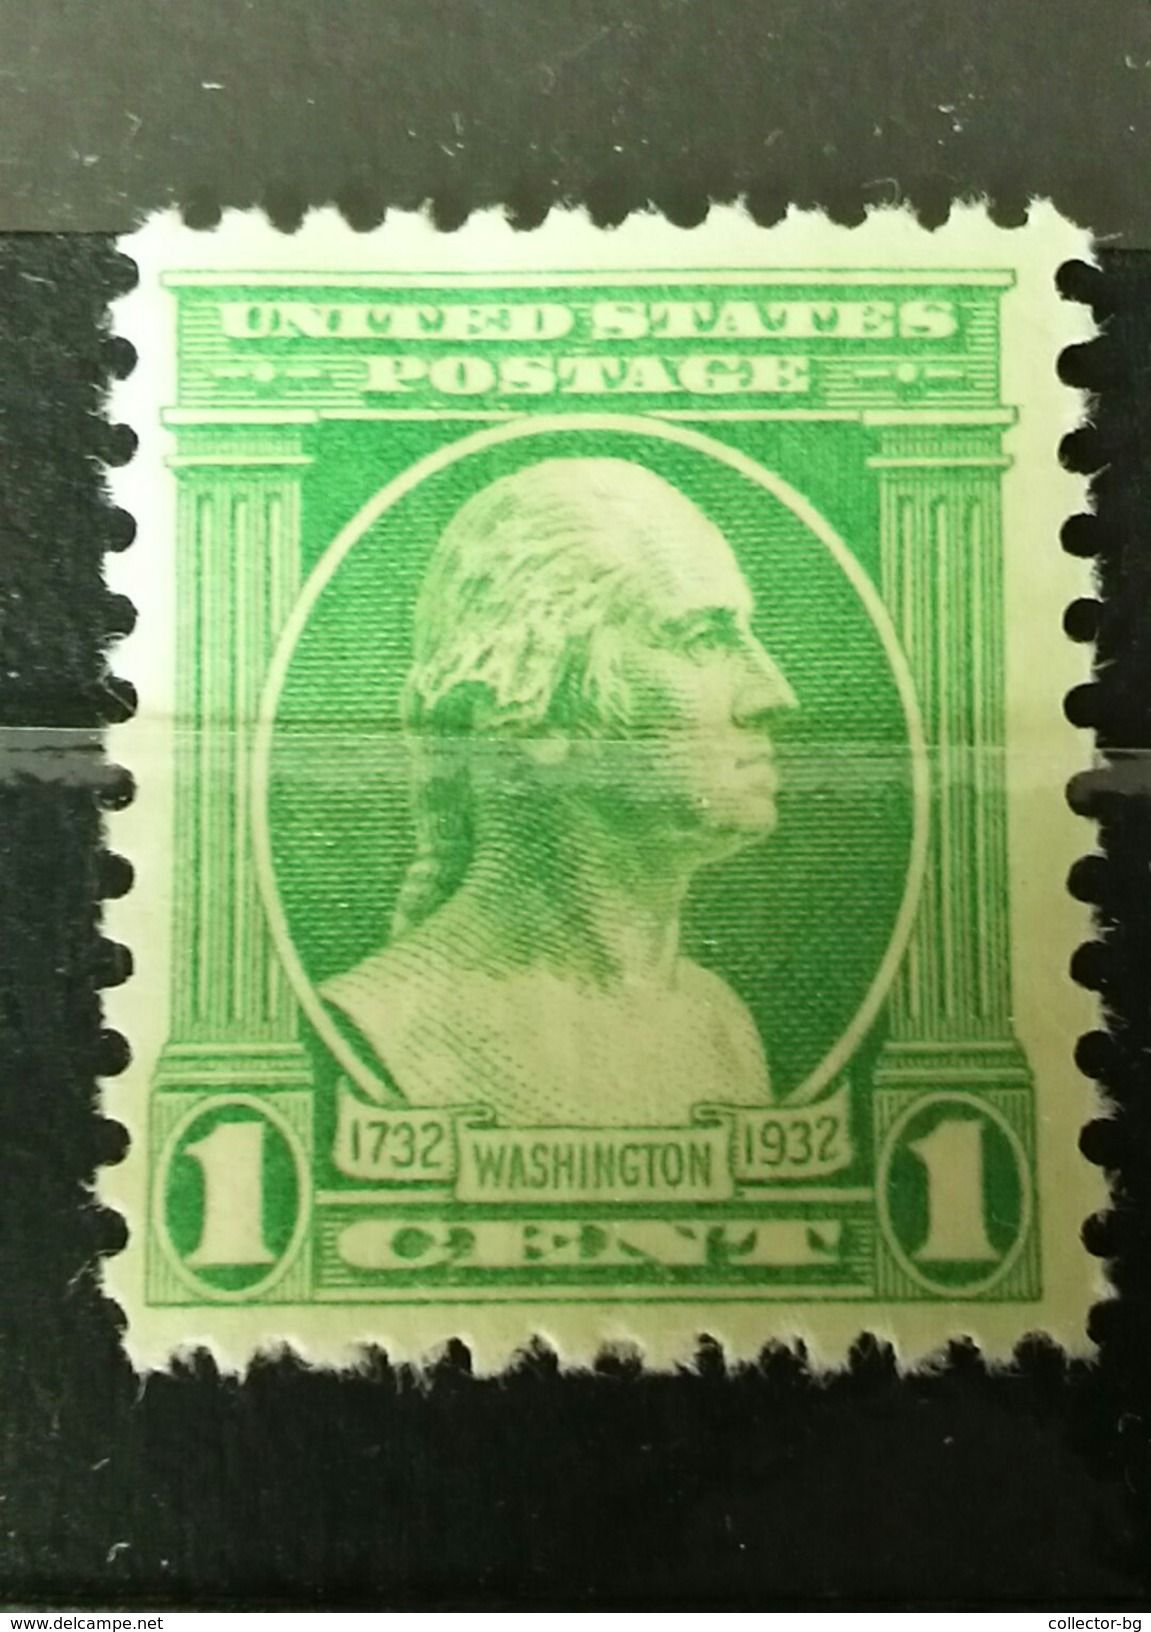 RARE 1 CENT US POSTAGE WASHINGTON 1732 1932 UNUSED MINT NEUF STAMP TIMBRE